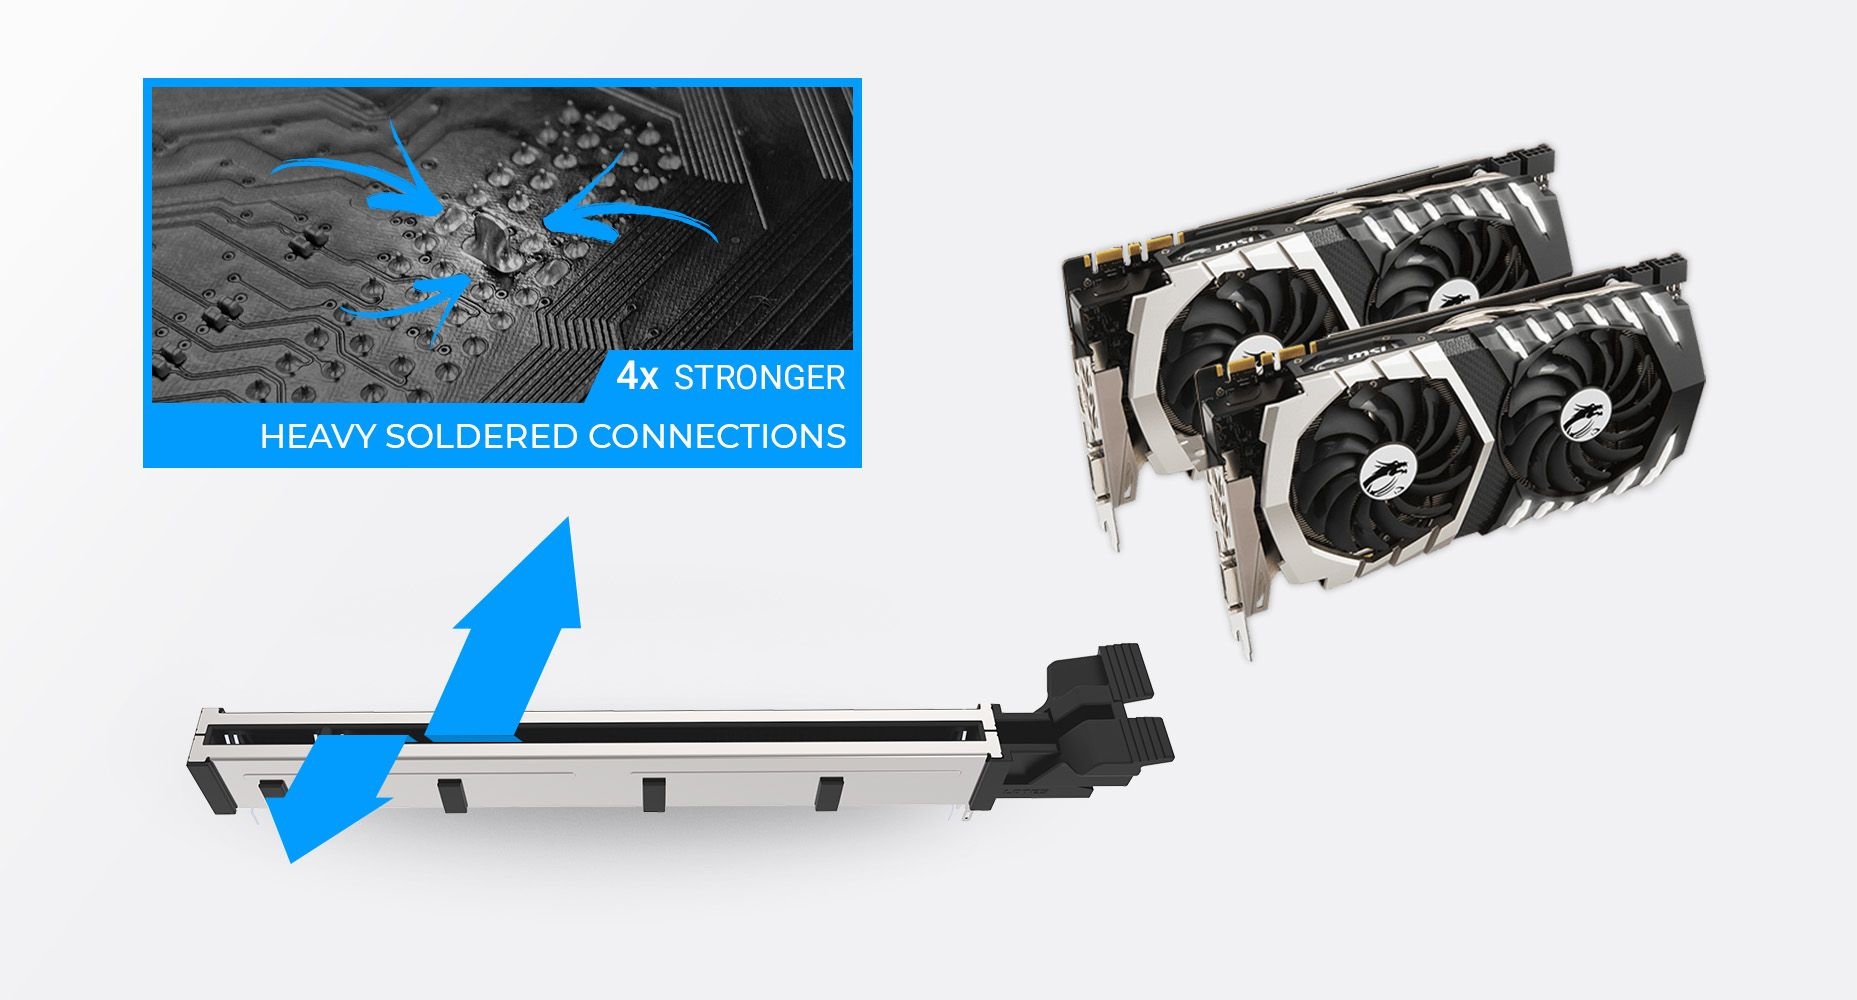 MSI Z590-A PRO MULTIPLE GPU SUPPORTS AND STEEL ARMOR